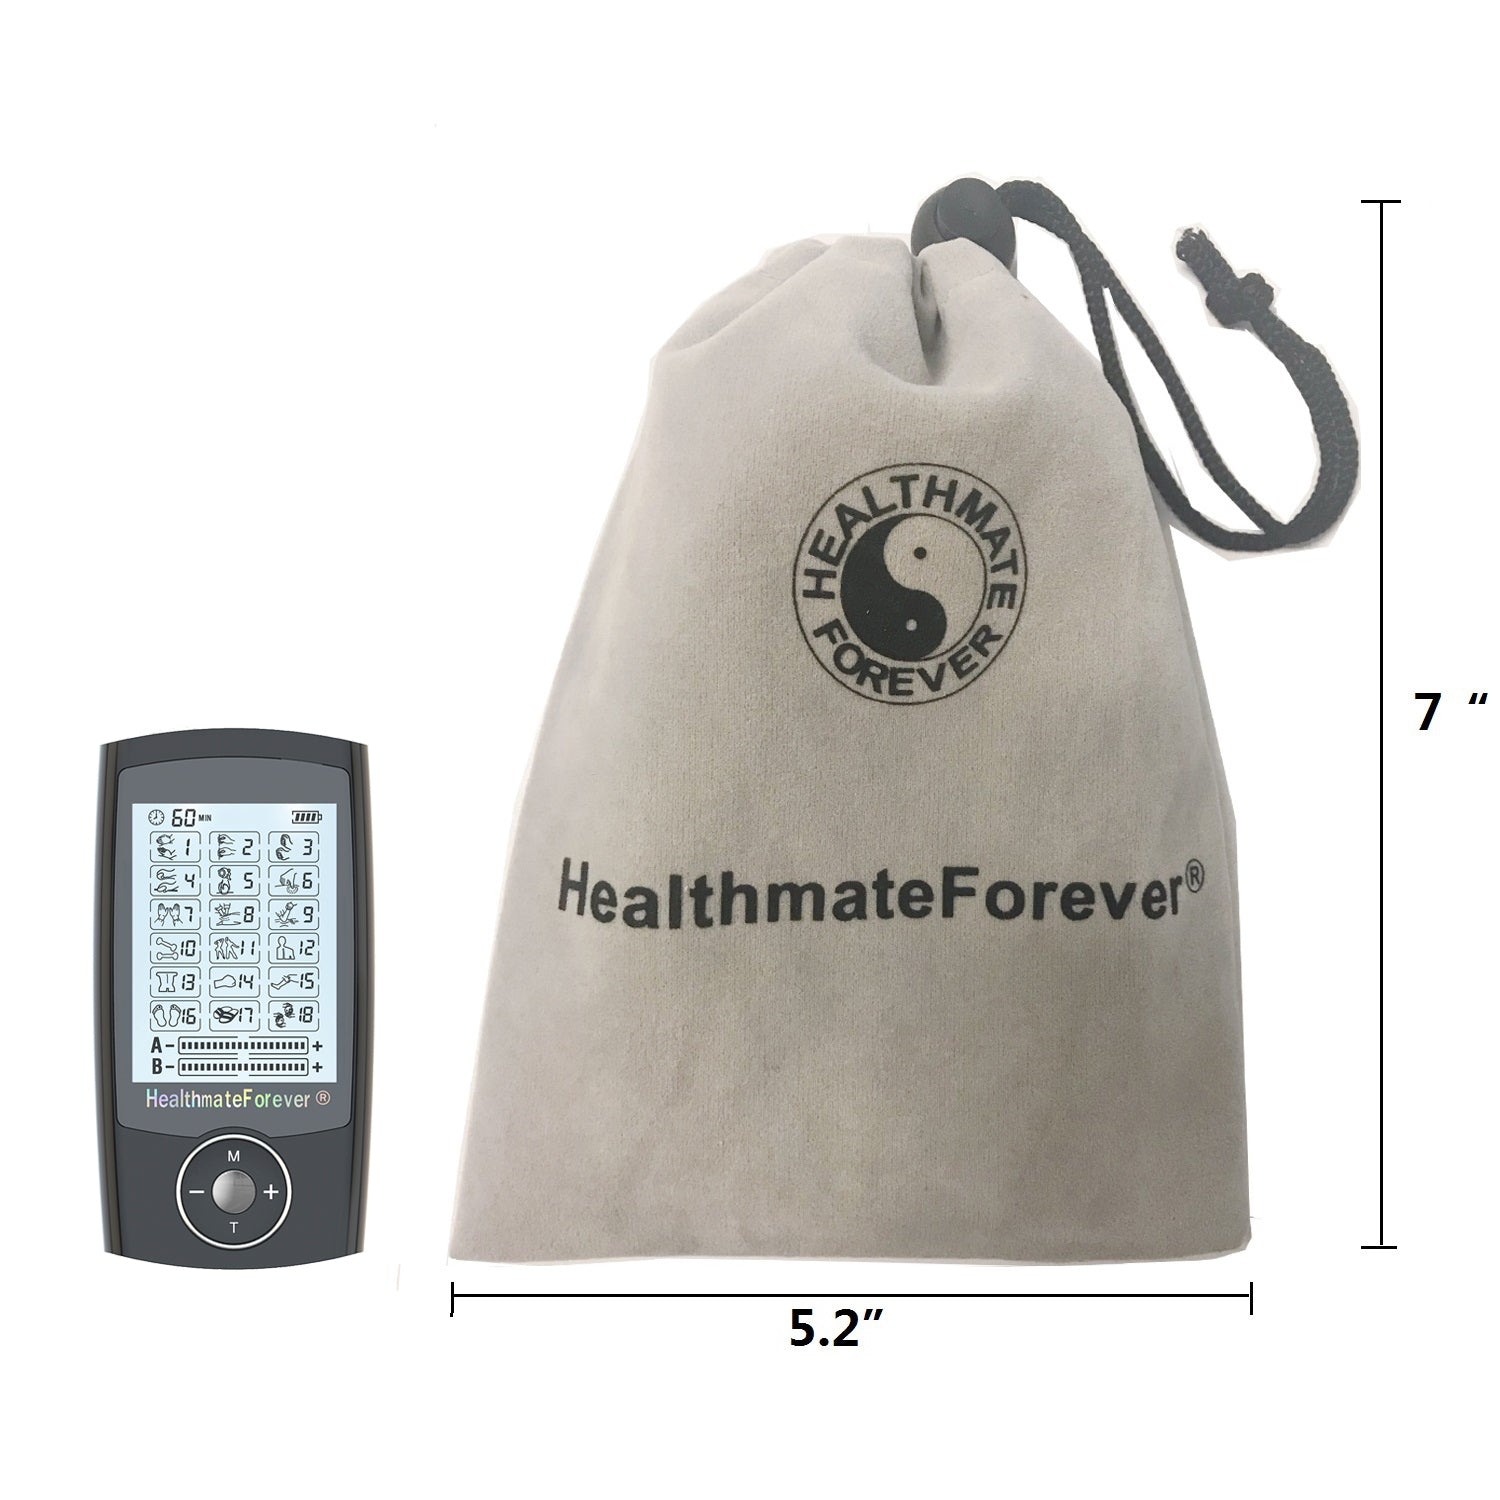 PRO18AB Pain Relief TENS Unit & Muscle Stimulator for reconditioning - 2 Year Warranty - HealthmateForever